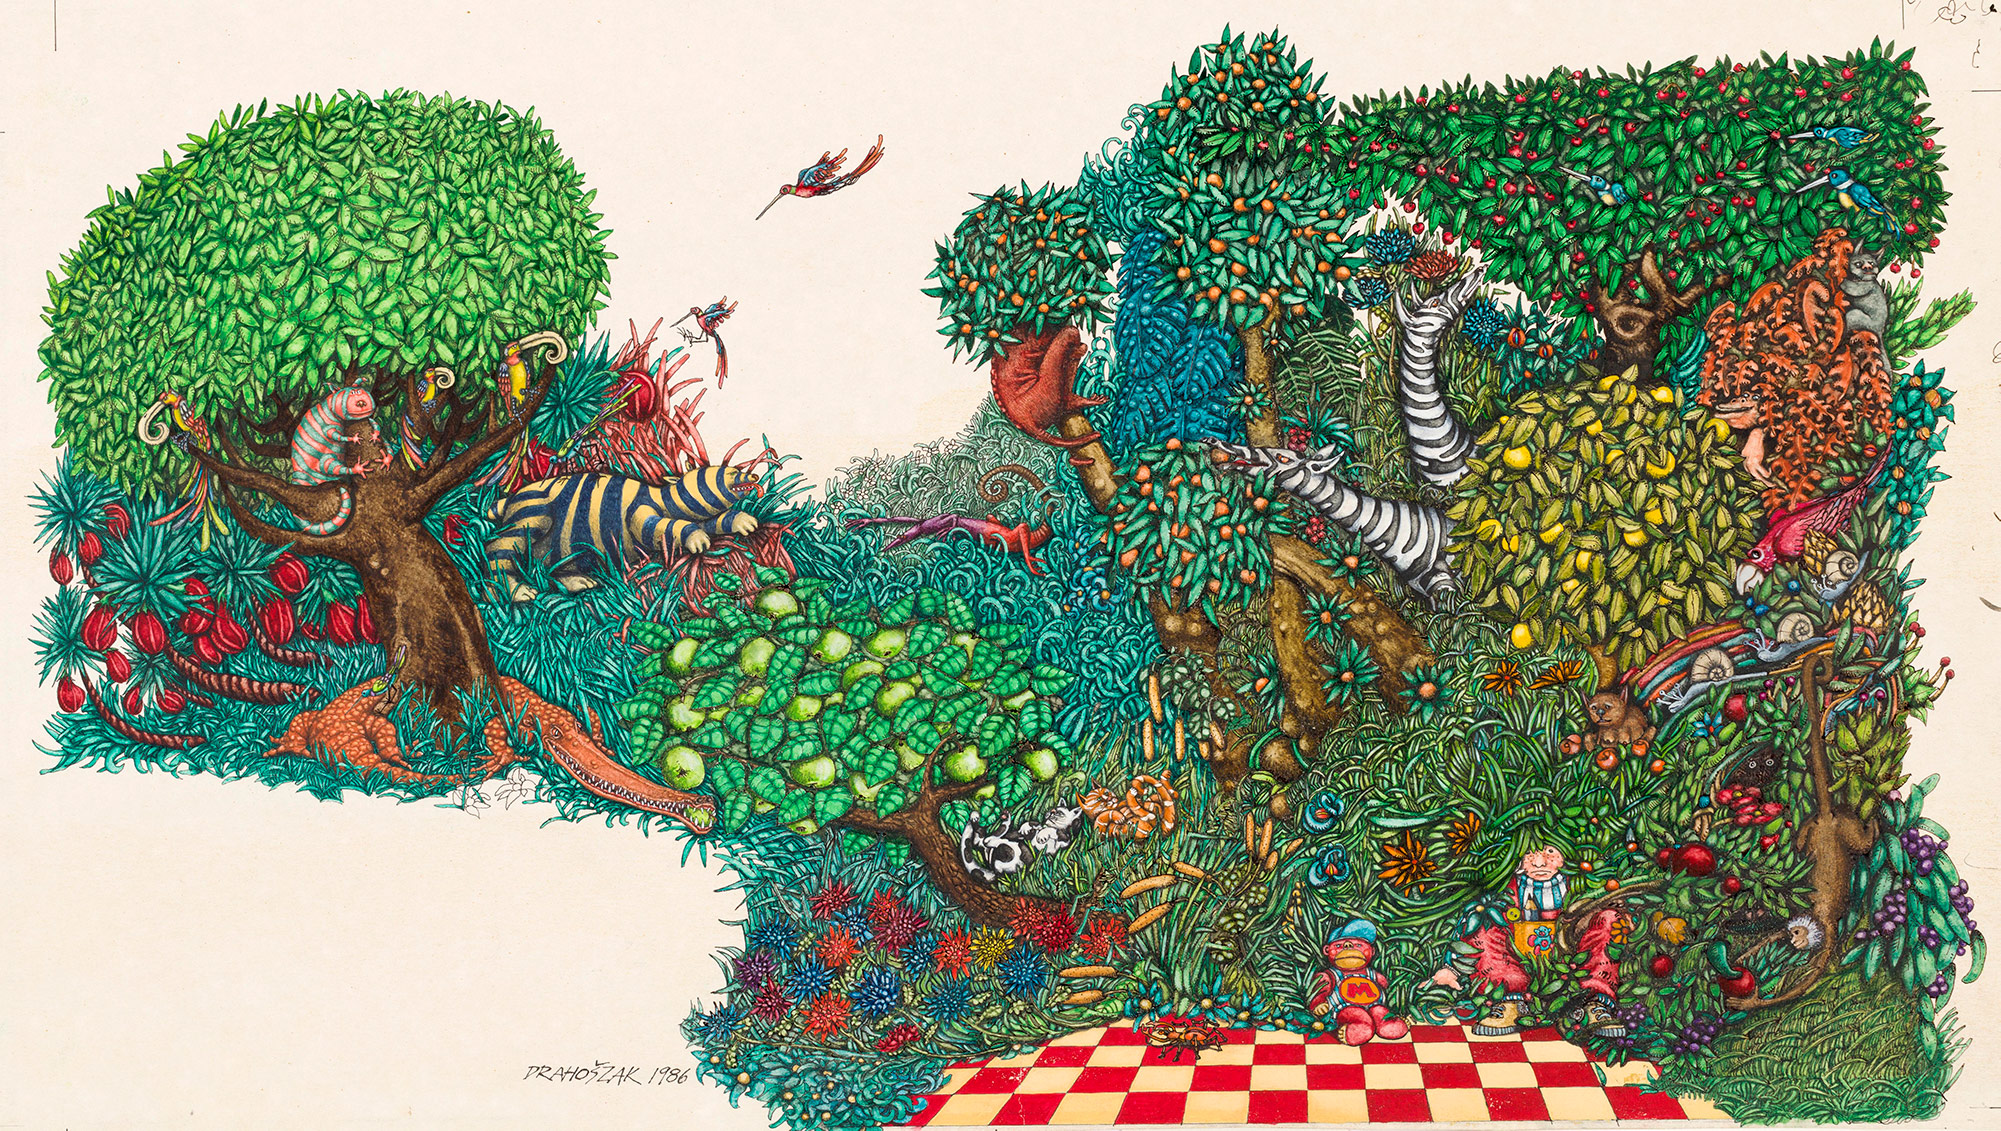 Illustration of a dense thicket of plants and the animals among it.